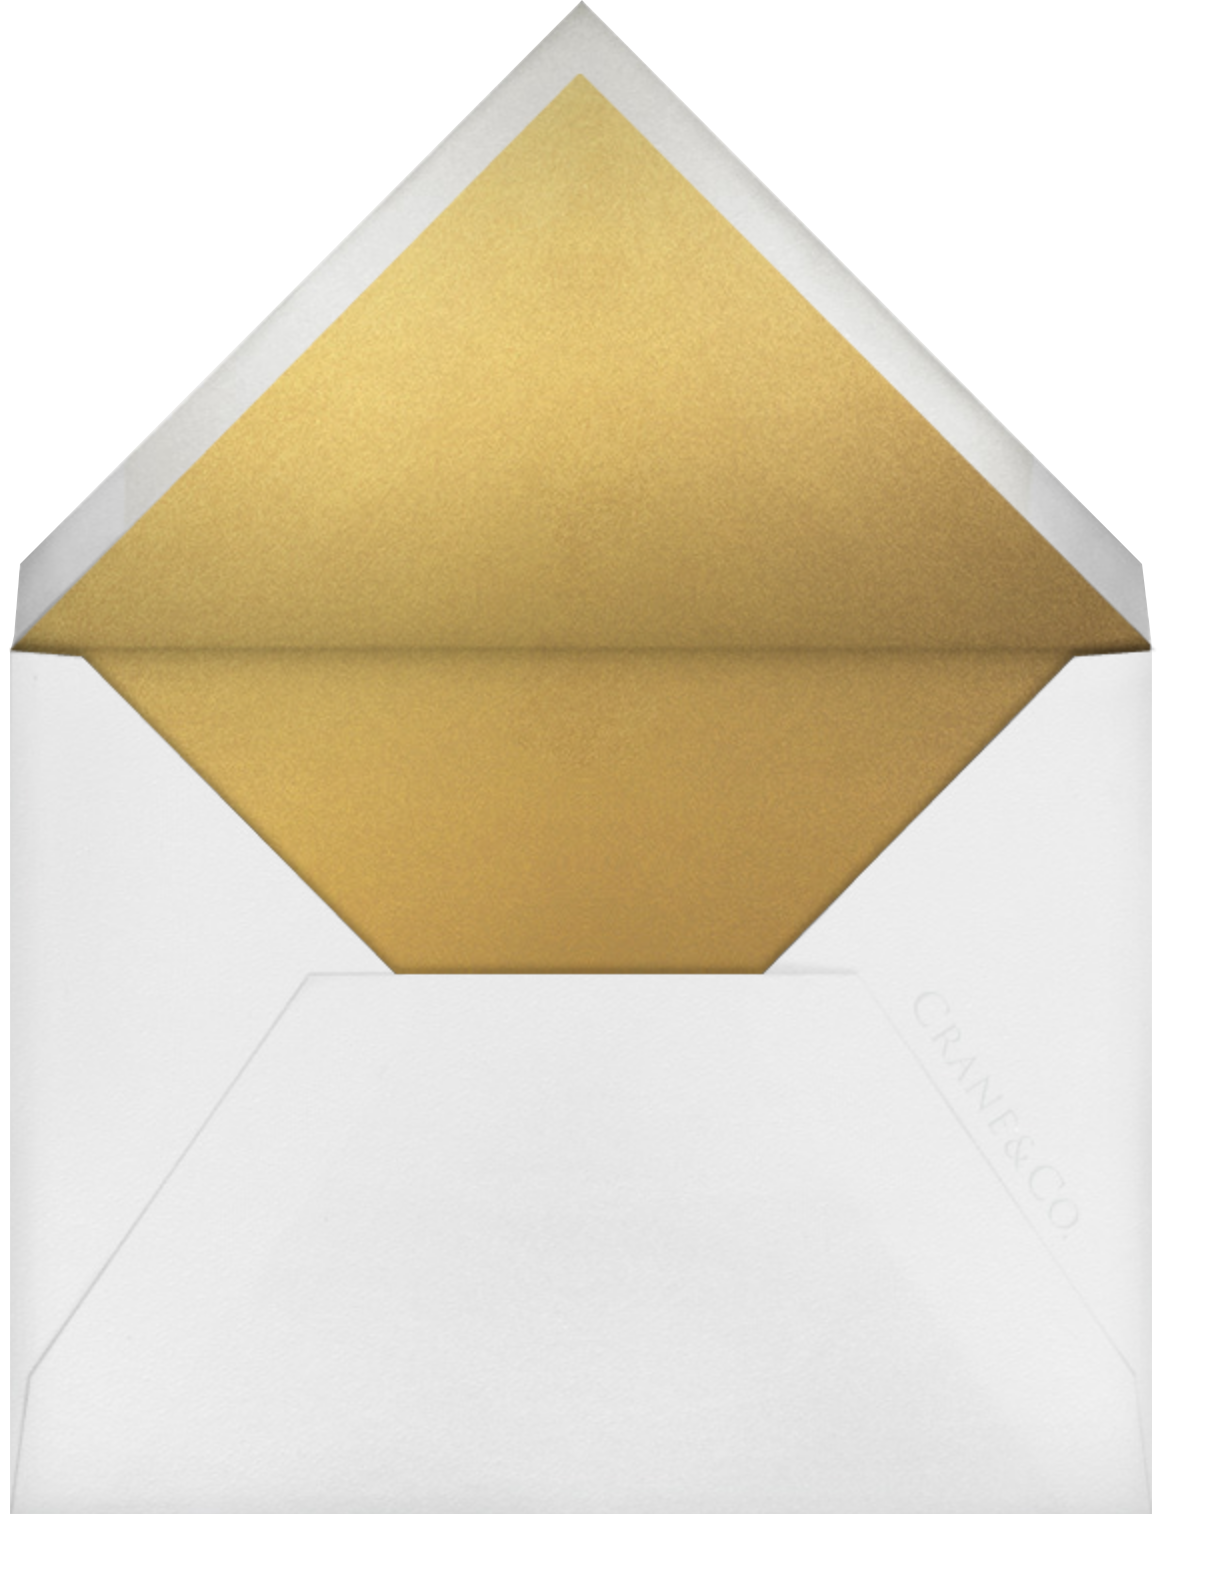 Caledonia (Greeting) - Paperless Post - Holiday cards - envelope back